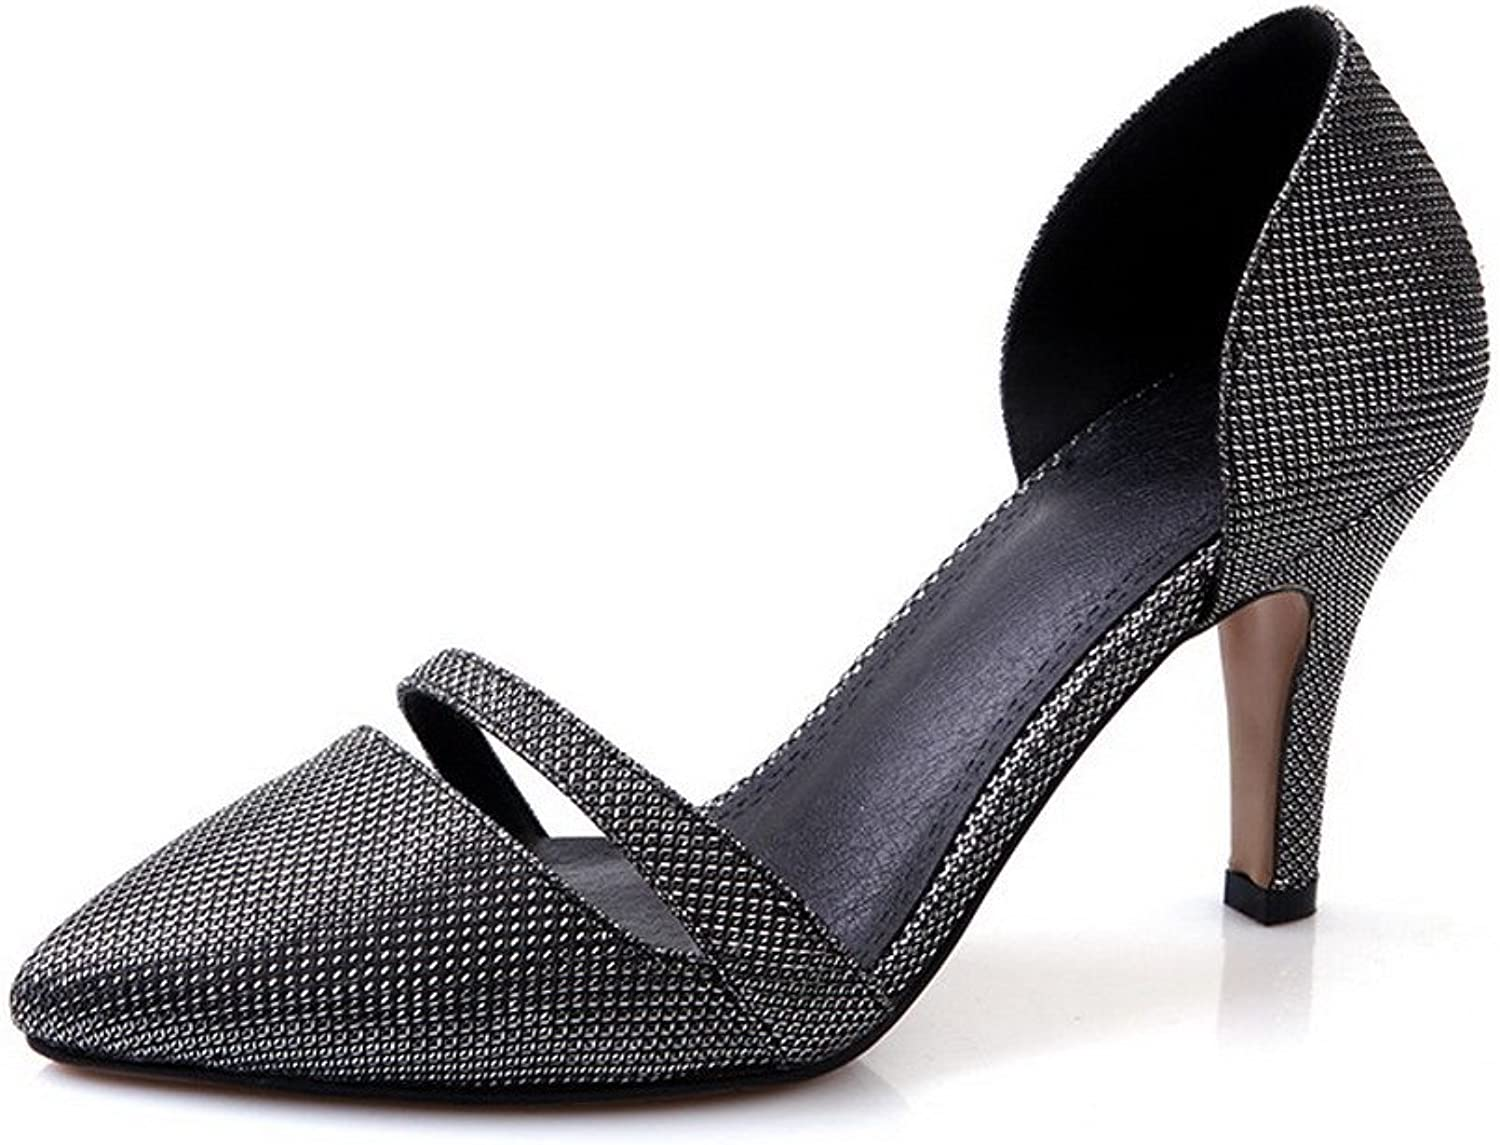 AmoonyFashion Women's Pull On High Heels Blend Materials Solid Pointed Closed Toe Pumps shoes